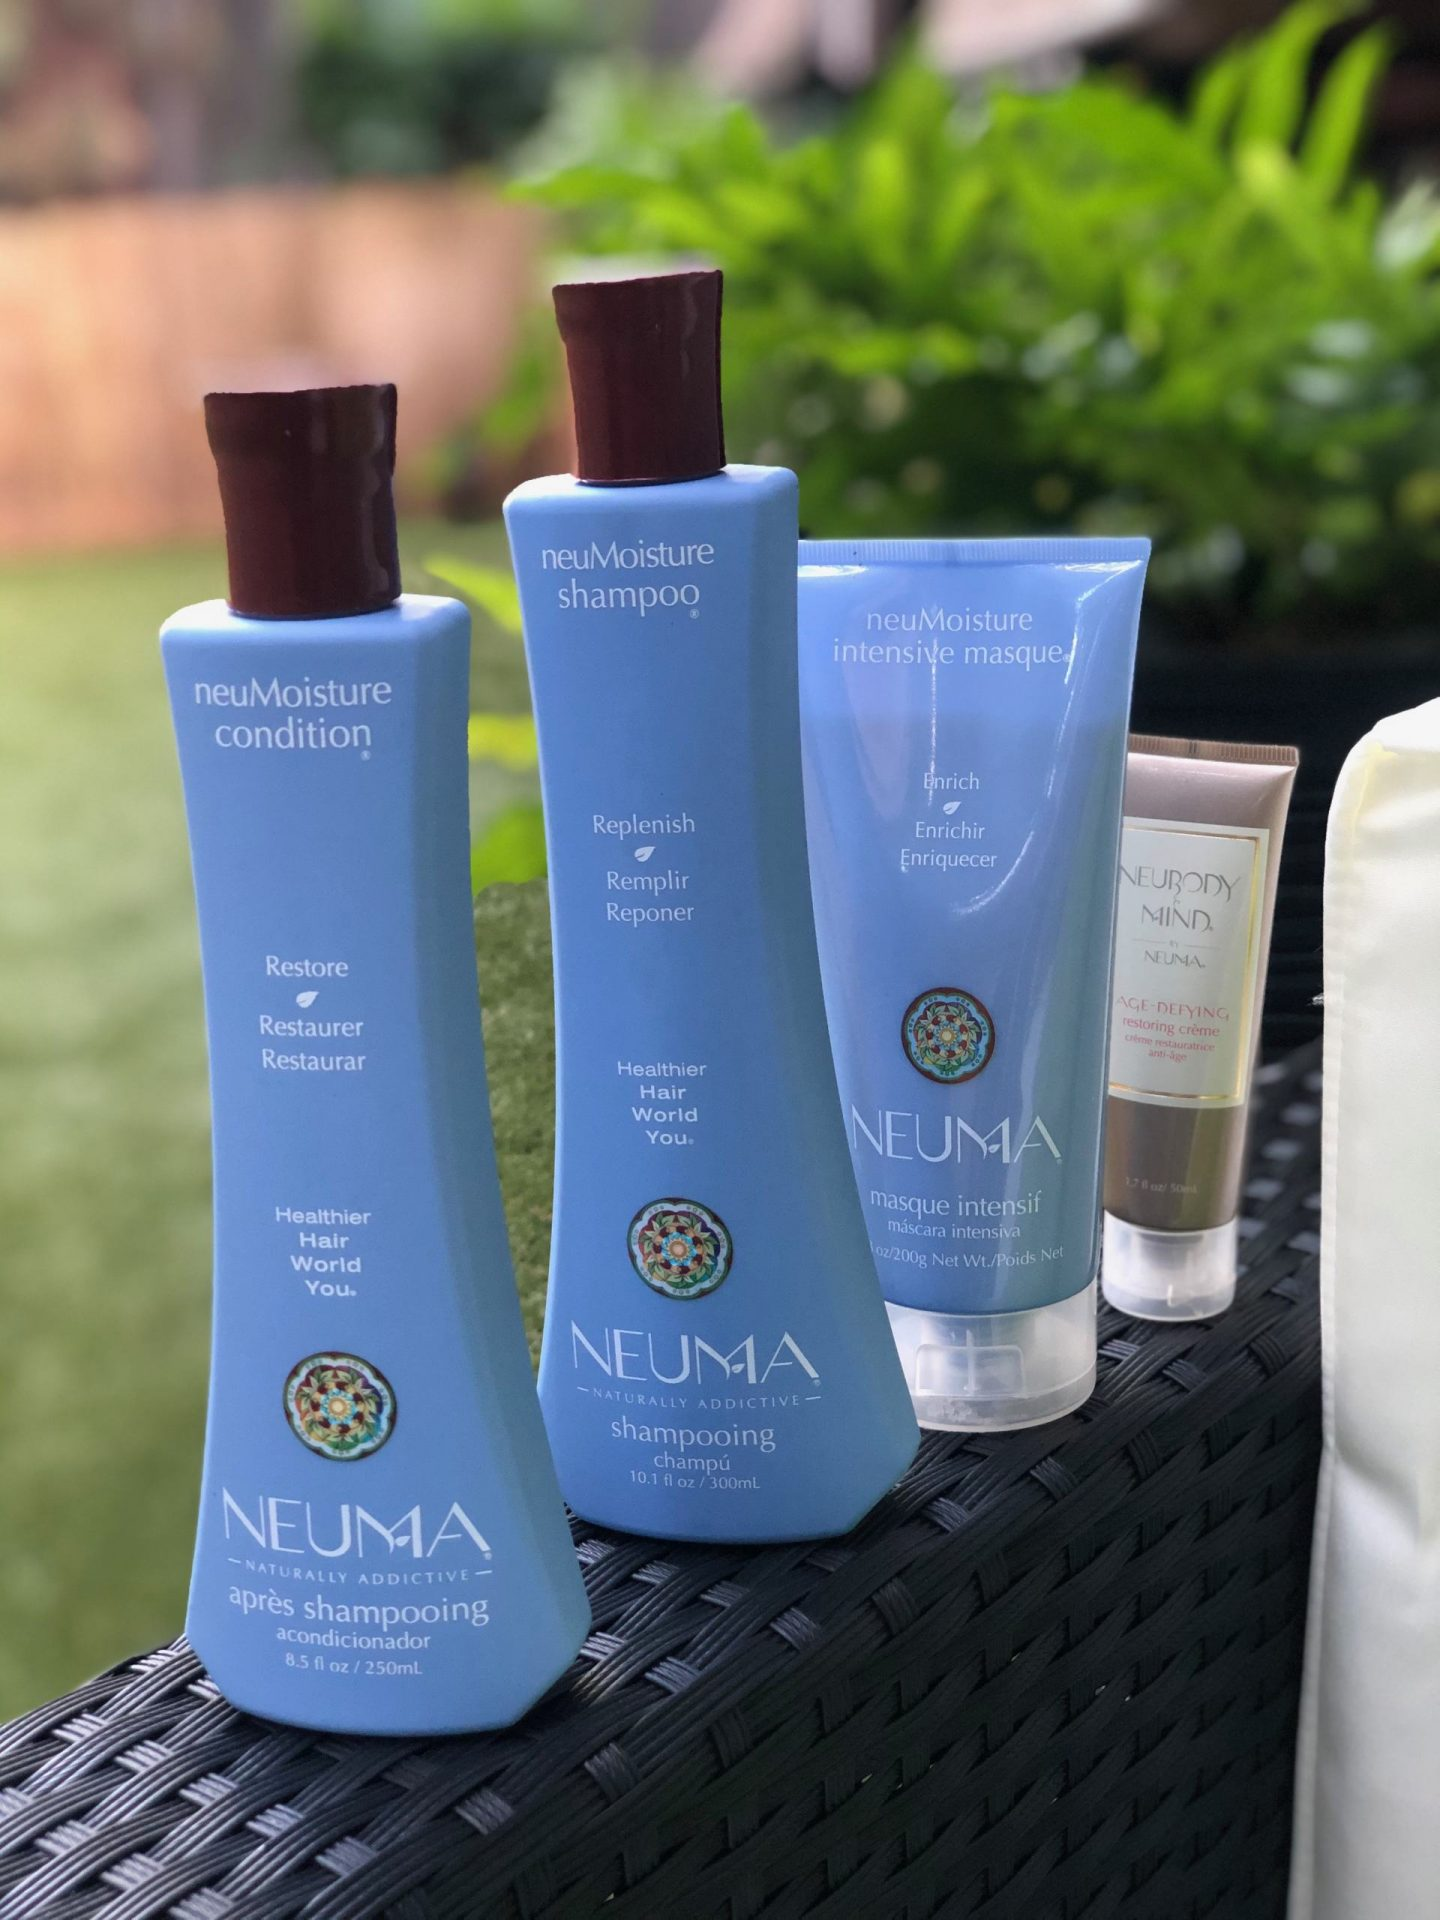 Neuma Beauty Vegan and Cruelty-free Haircare line